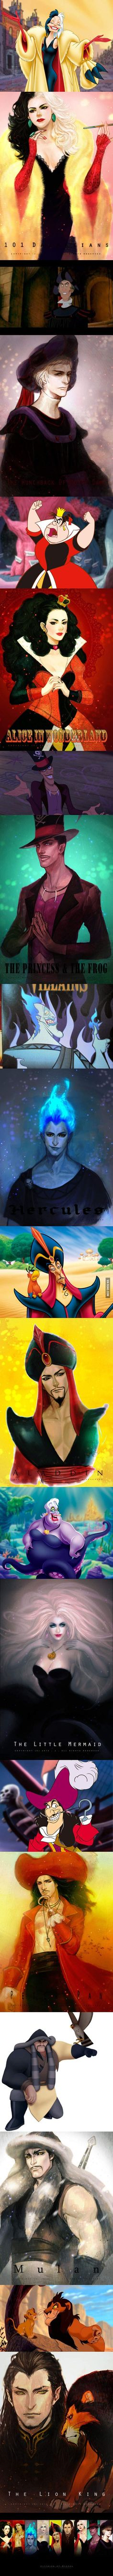 If Our Favorite Disney Villains Were Drop Dead Gorgeous<--- yeessssss, Jafar!